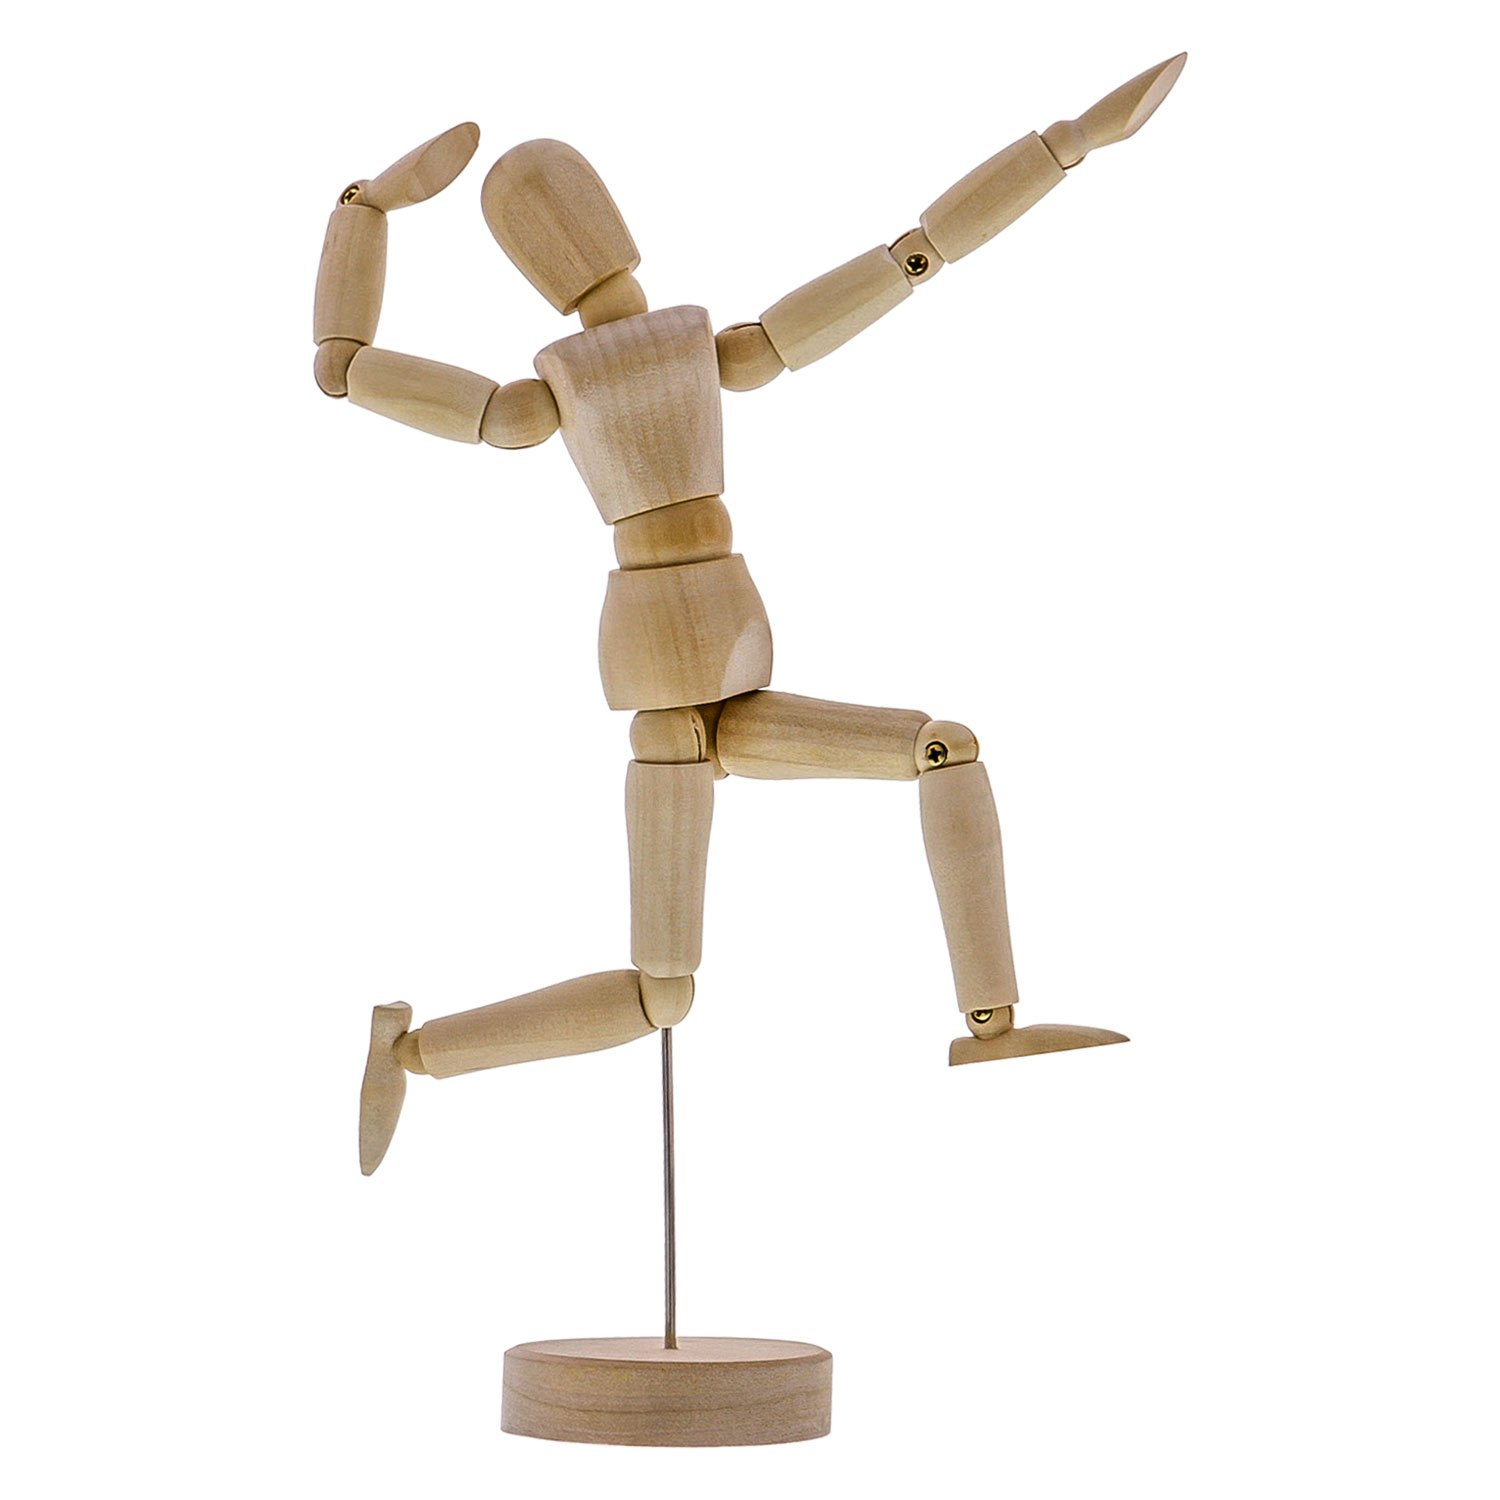 It's just a picture of Adaptable Wooden Drawing Mannequin